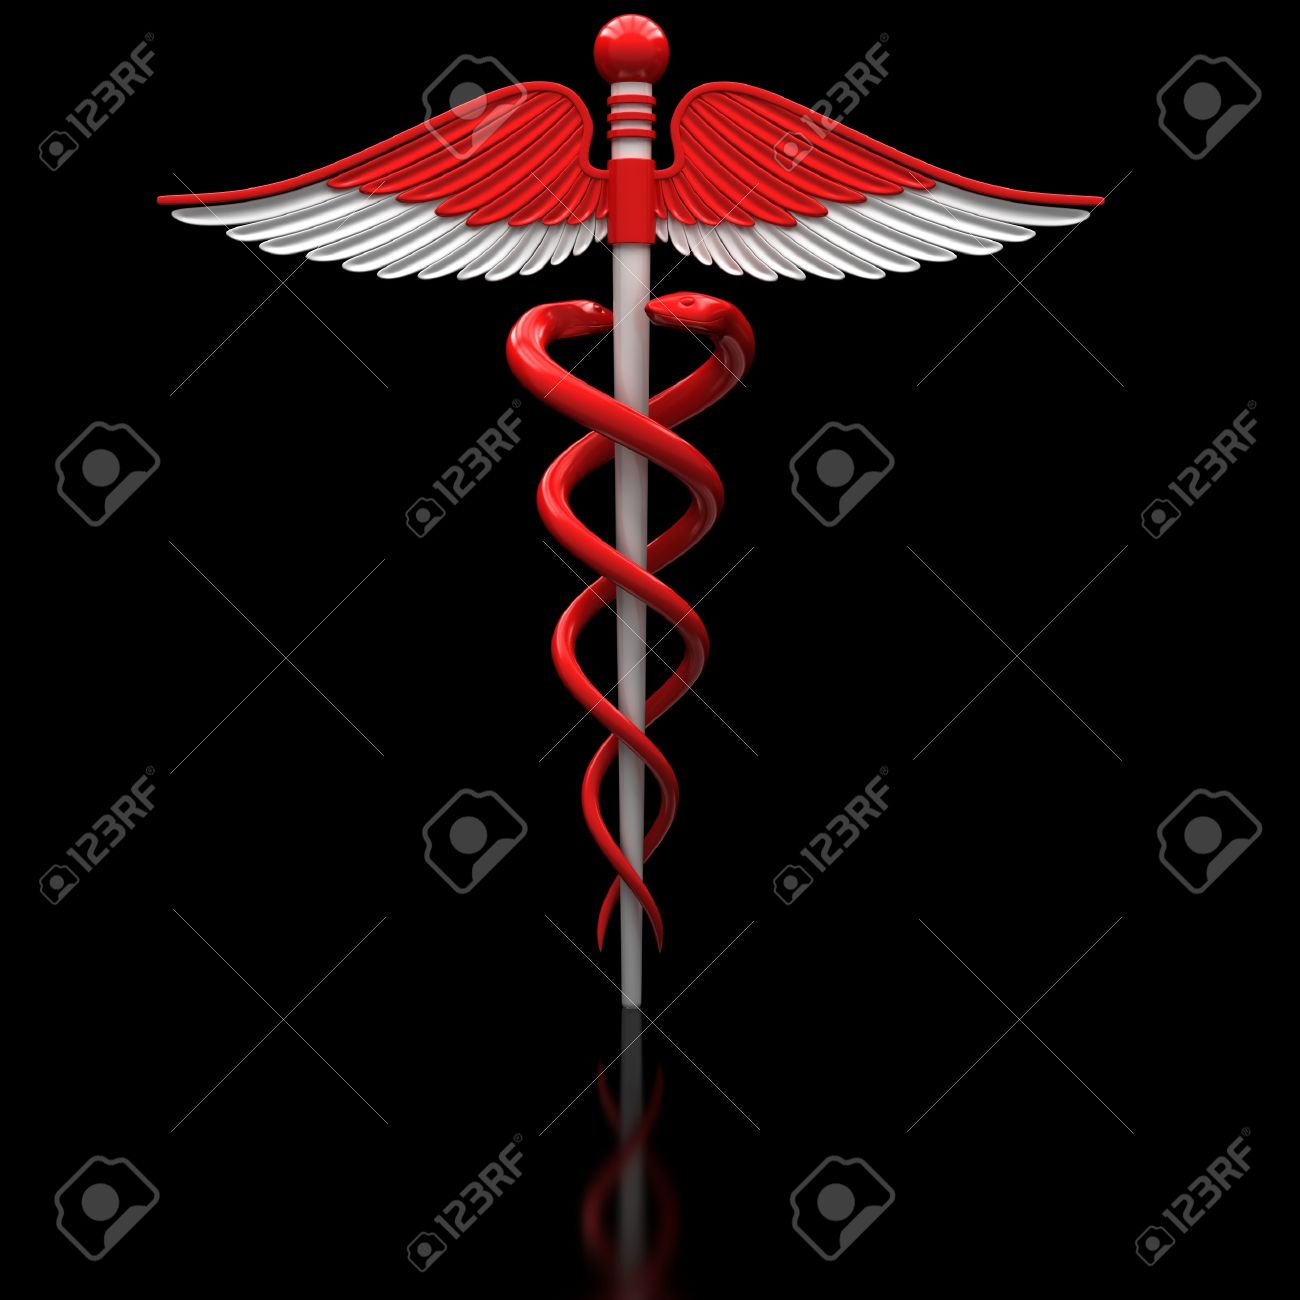 Red Medical Caduceus Symbol On A Black Glossy Surface Stock Photo